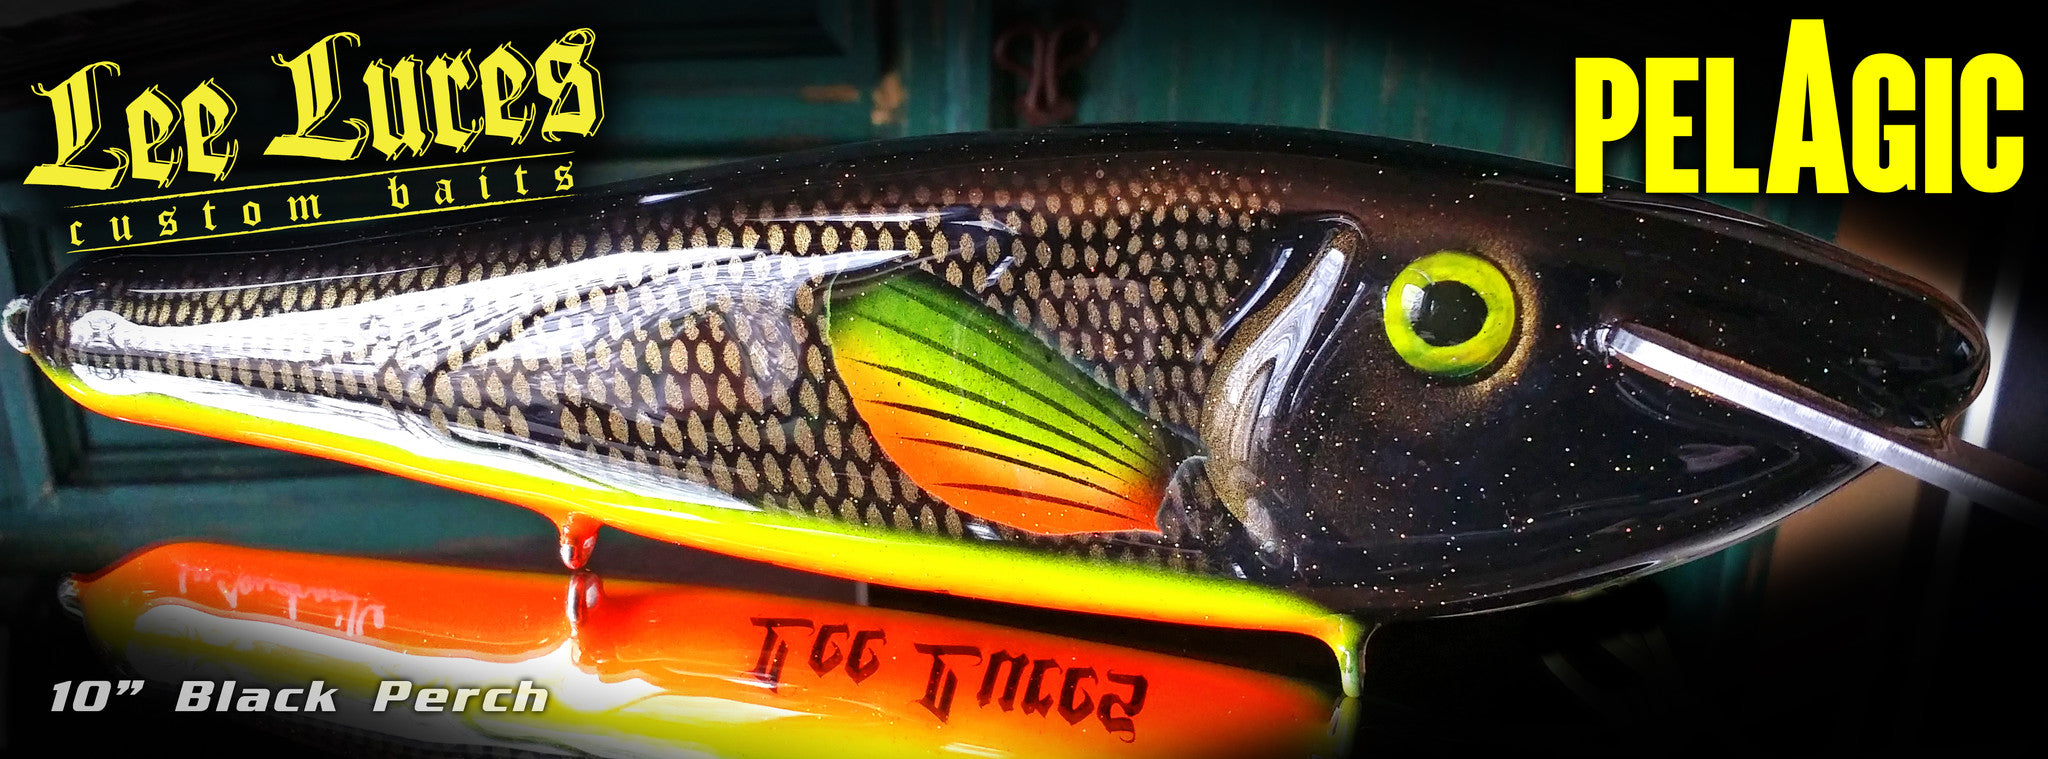 Lee Lures Custom Baits